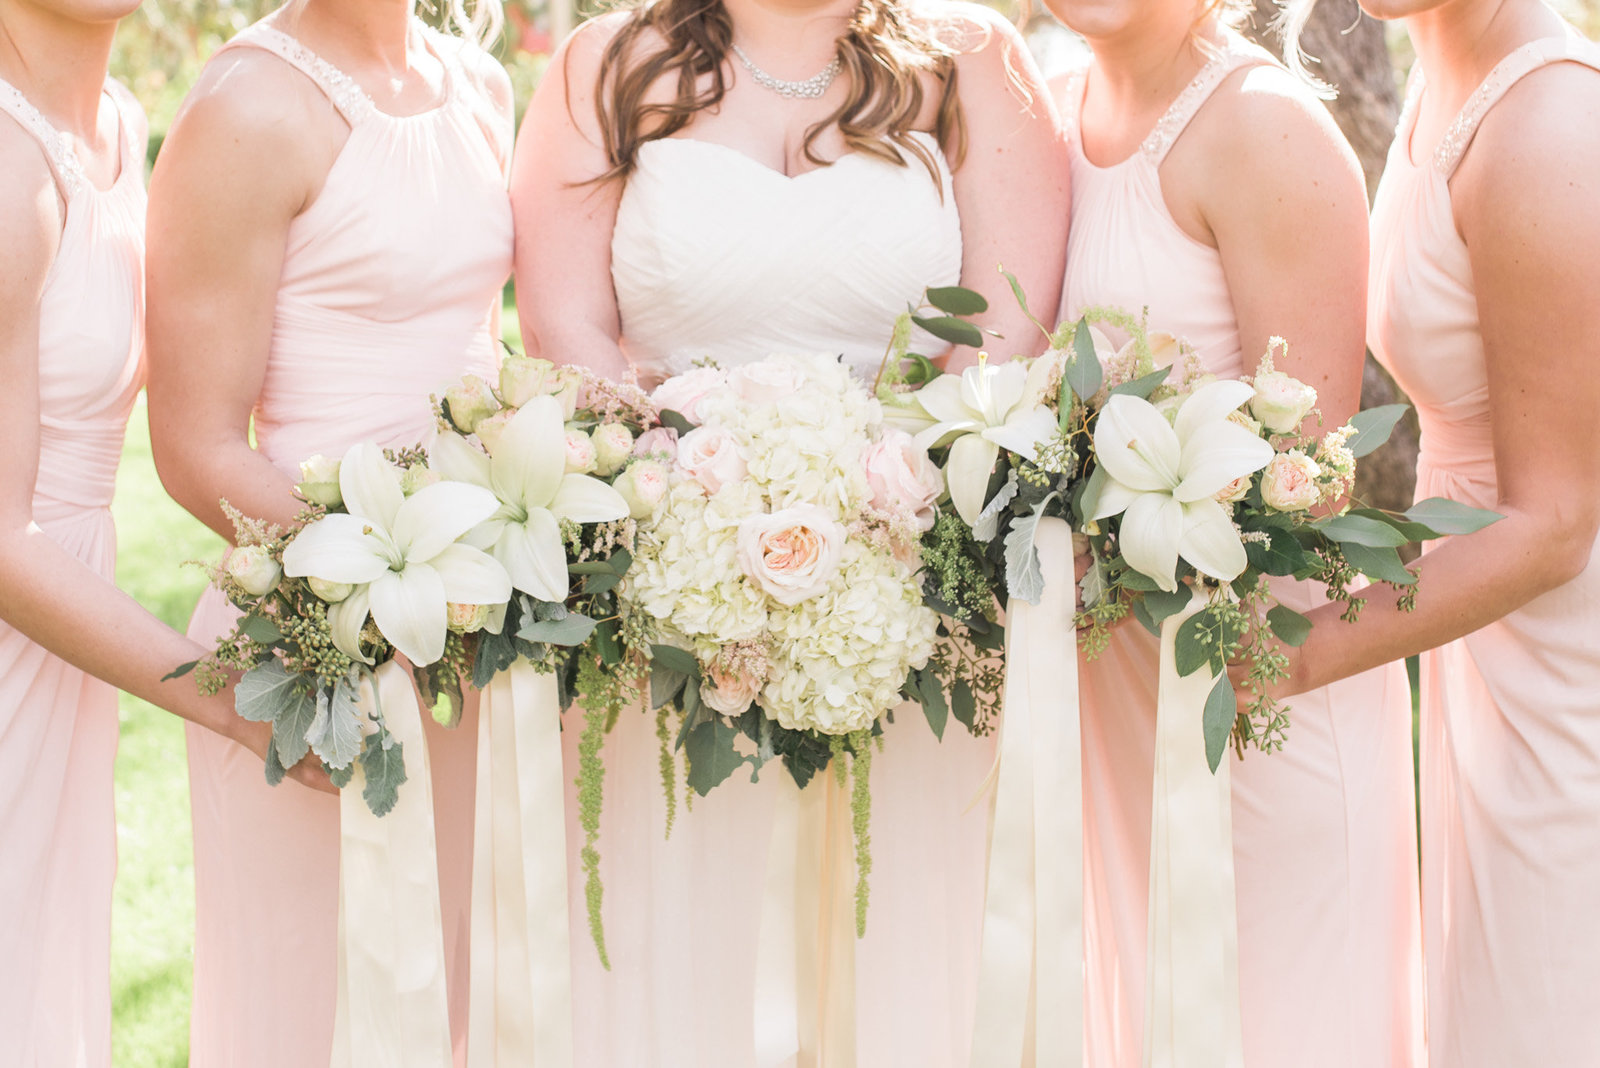 windmill winery blush pink wedding photo of bride and bridesmaids